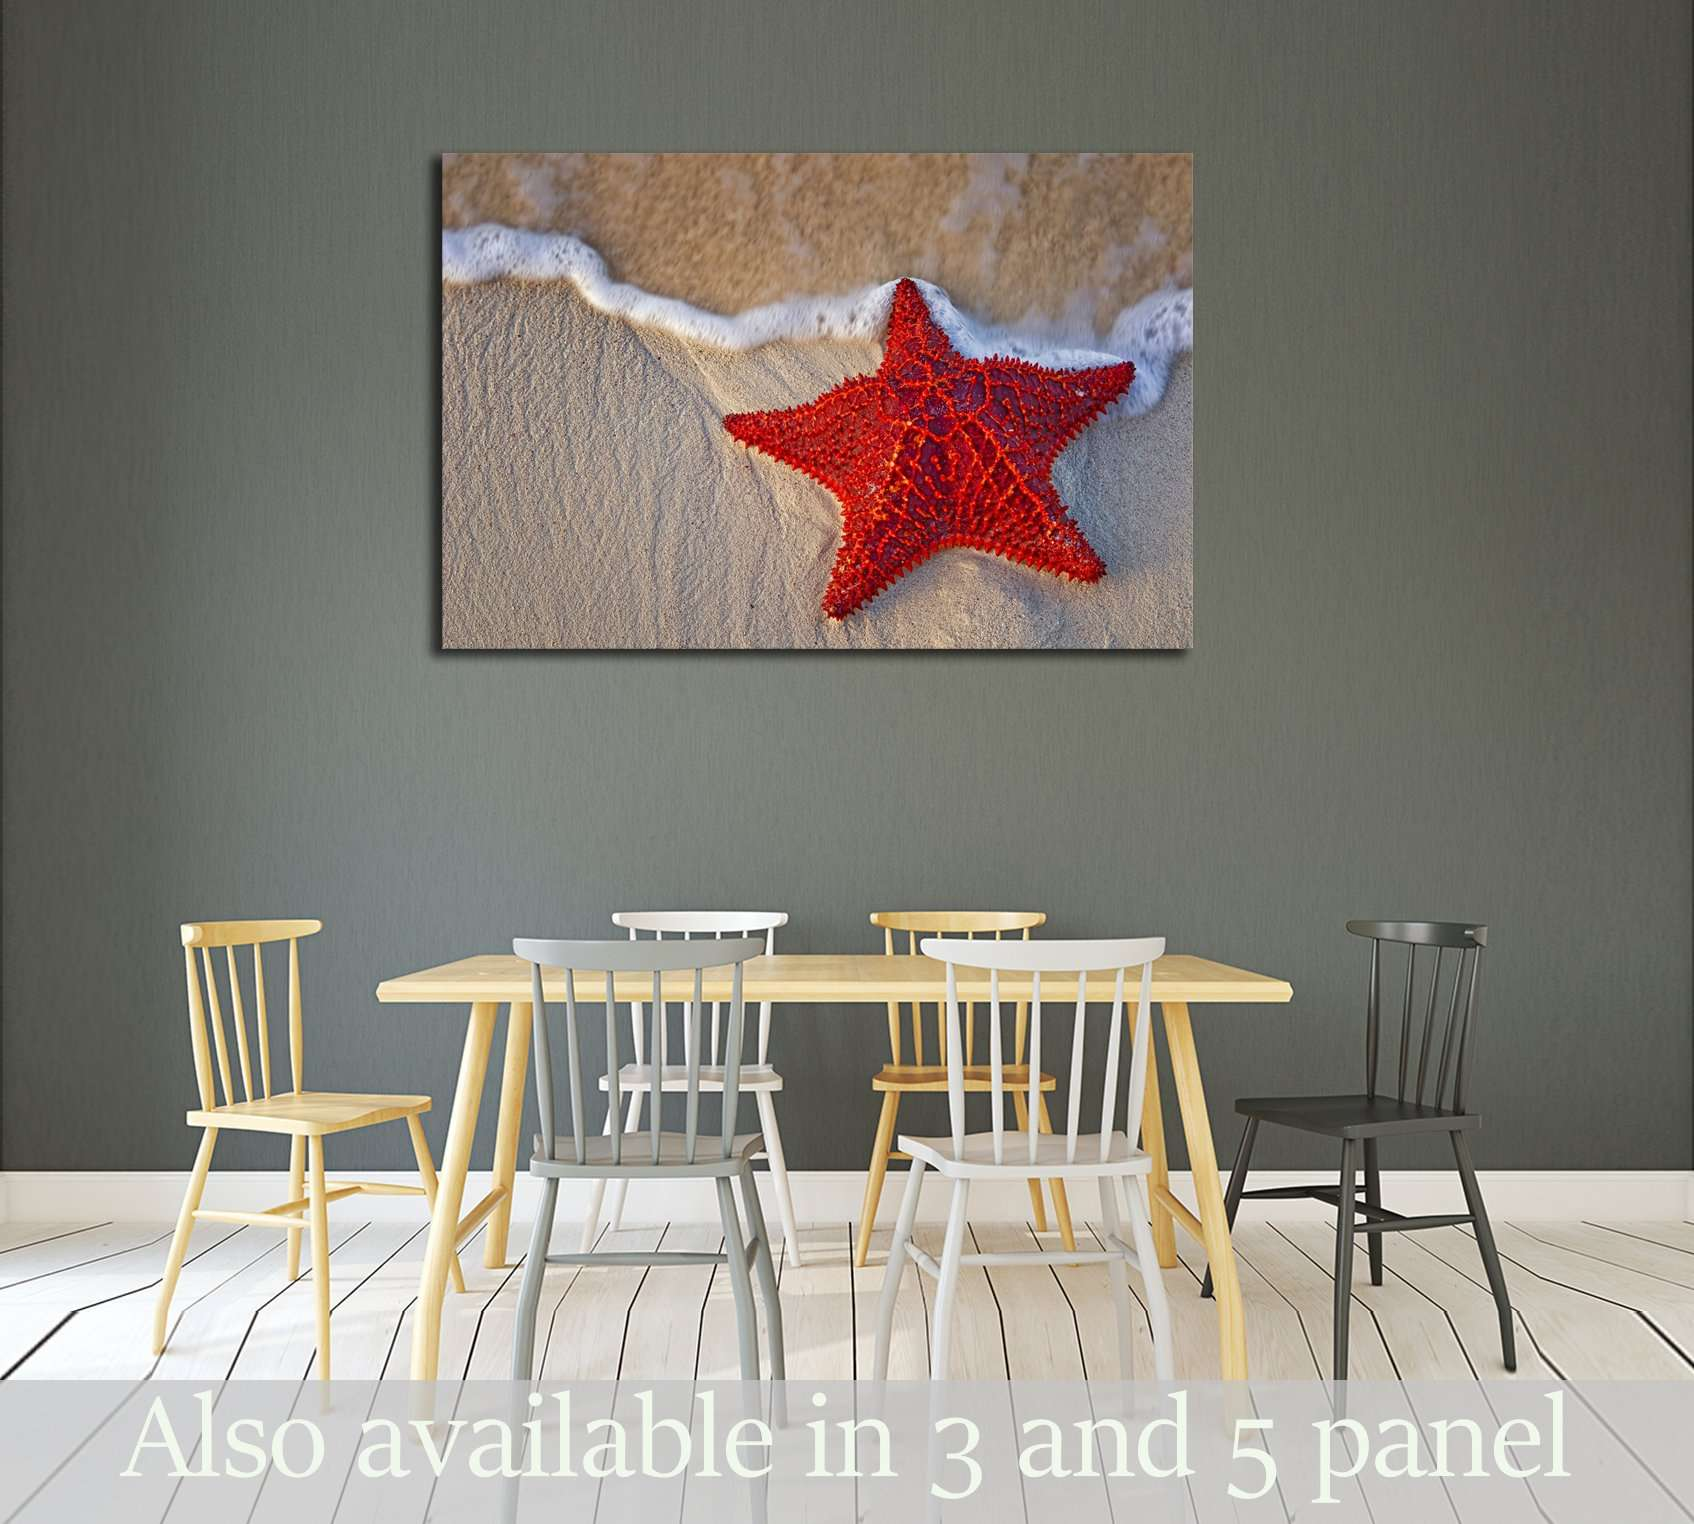 Bahama Starfish on the beach with incoming waves from the ocean №3027 Ready to Hang Canvas Print